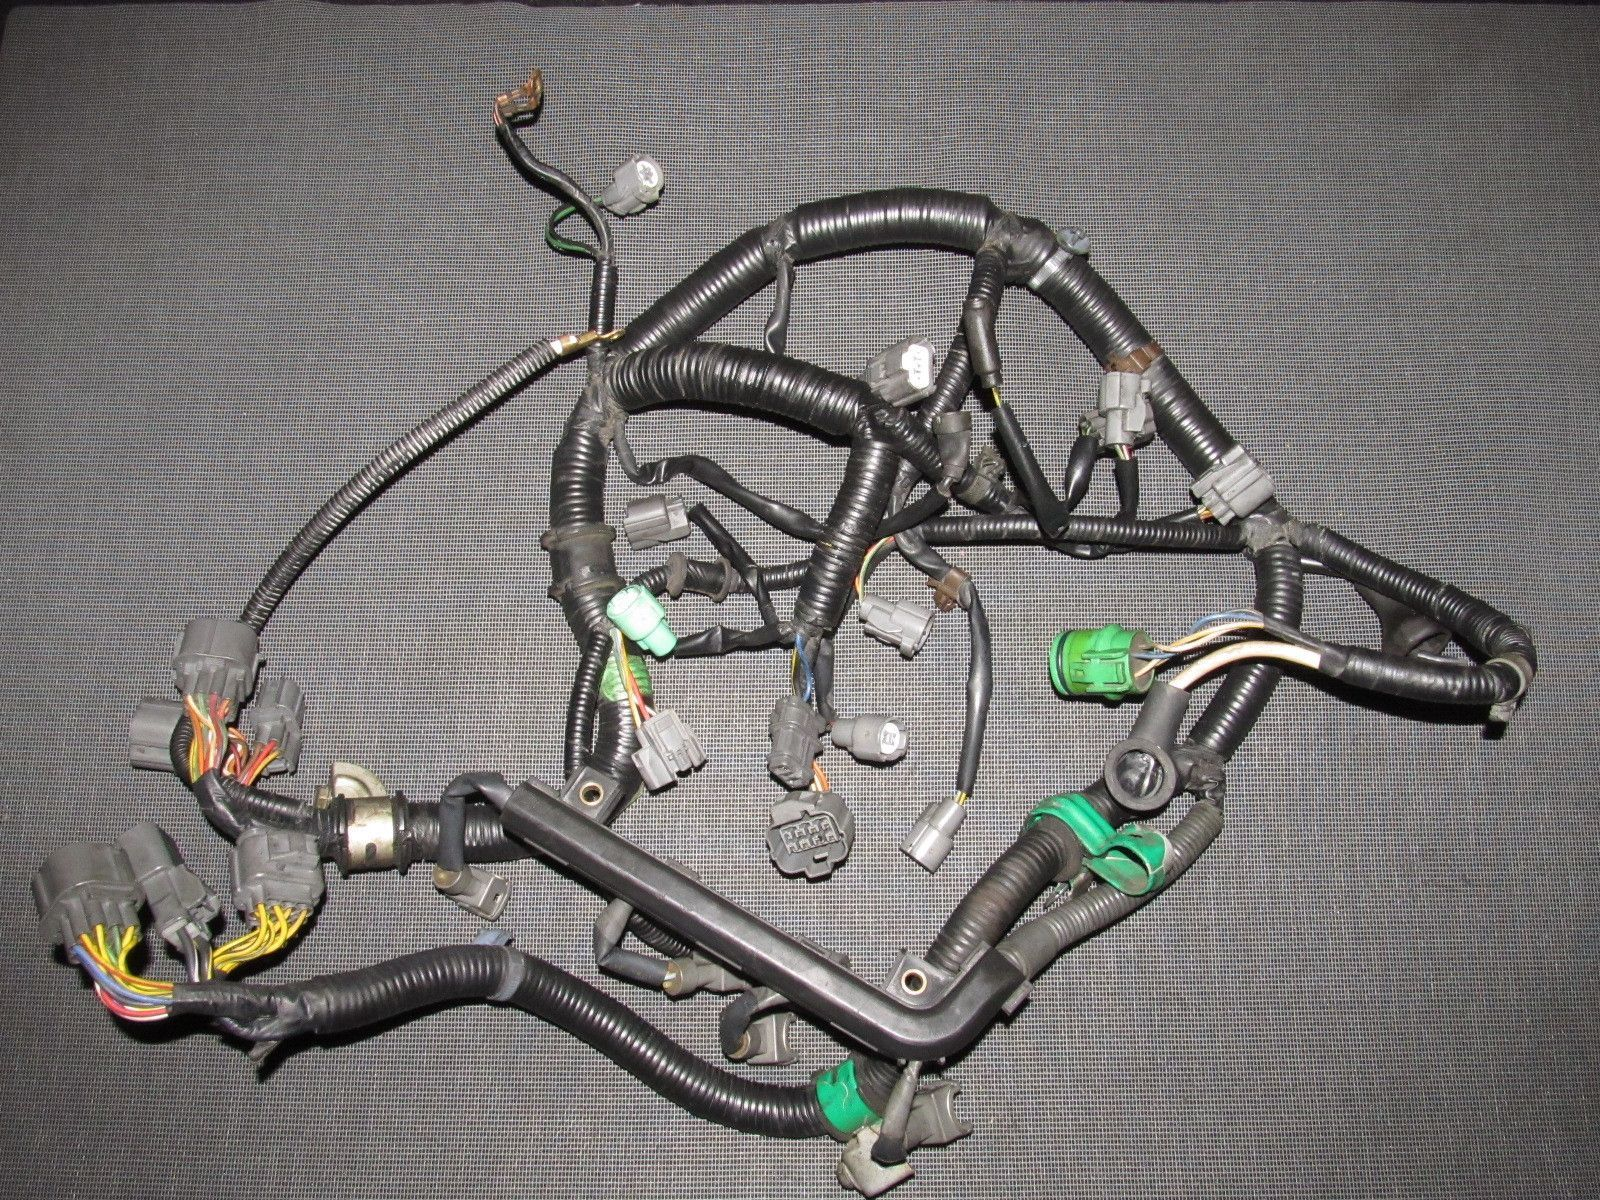 d16z6 wiring harness diagram electric motor contactor 93 94 95 honda del sol auto transmission engine